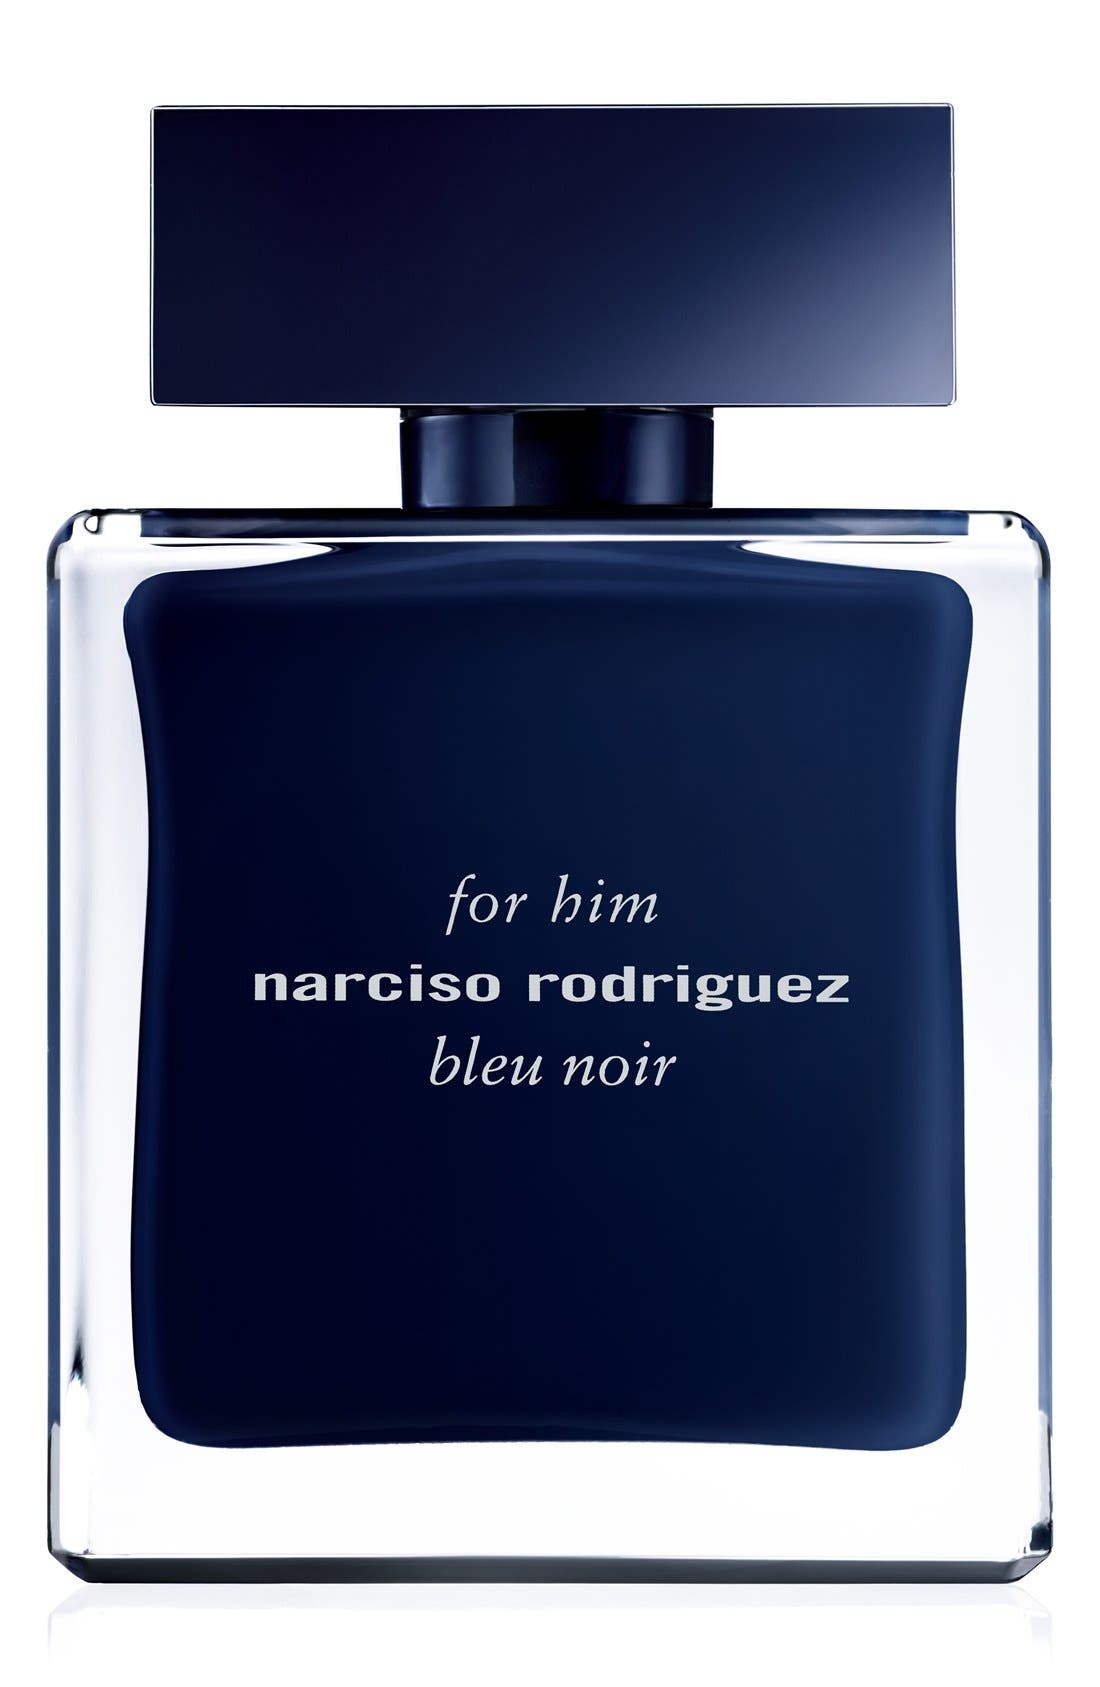 Narciso Rodriguez 'For Him Bleu Noir' Eau de Toilette